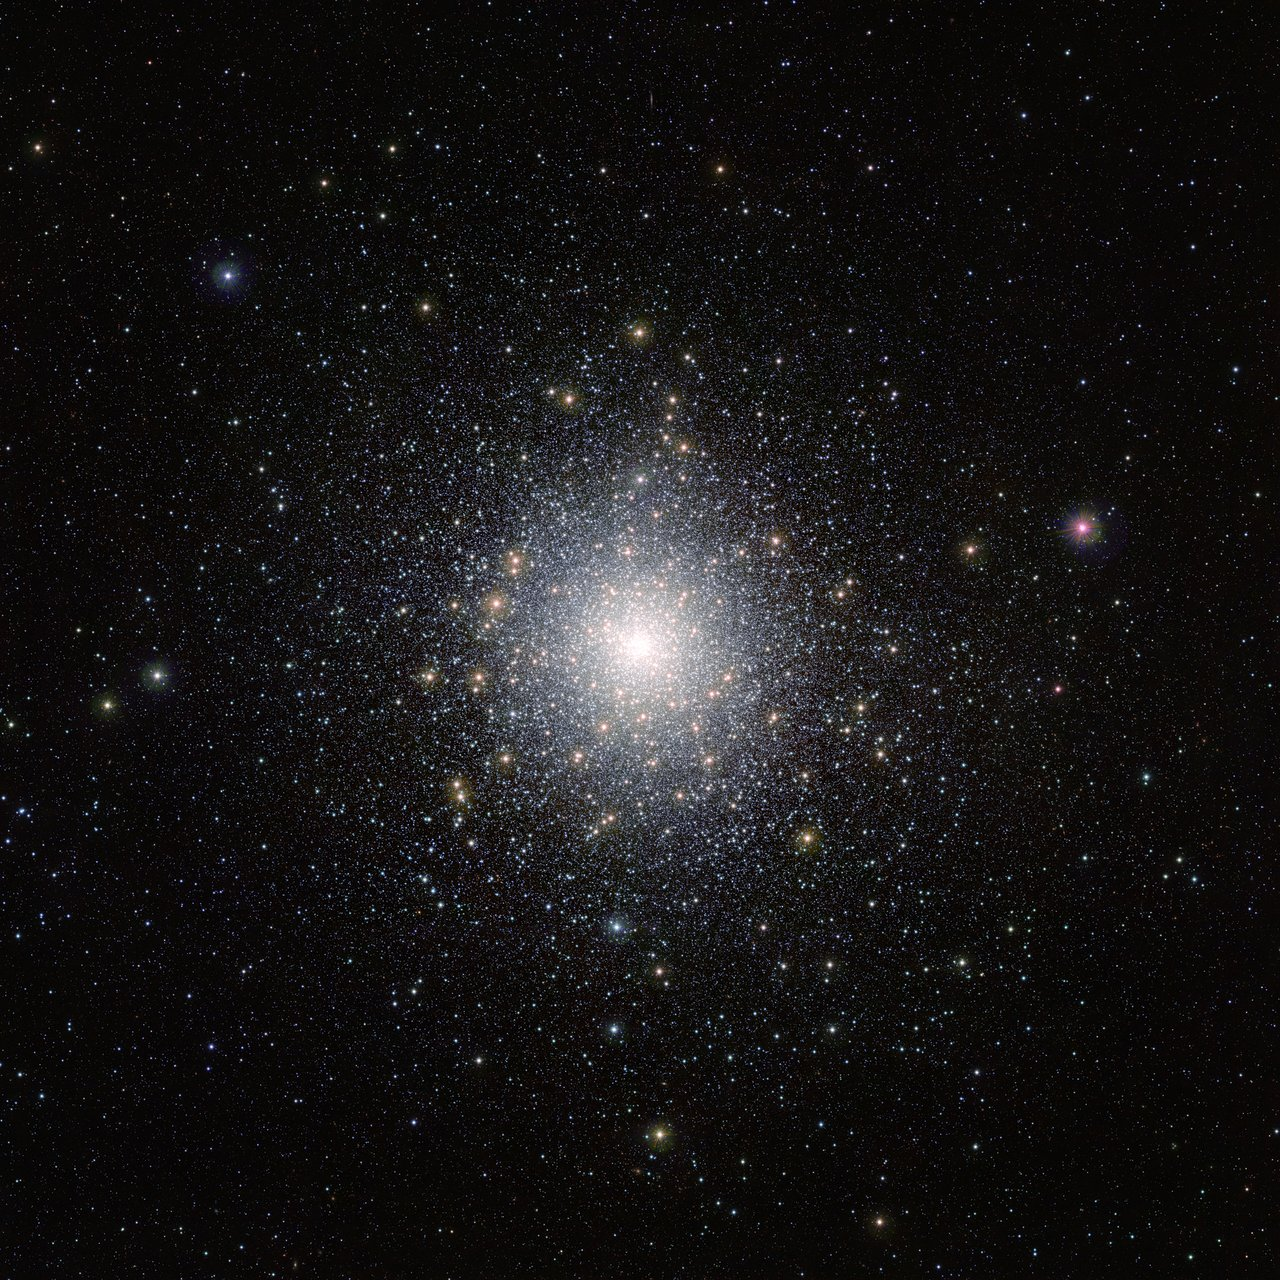 http://www.eso.org/public/archives/images/screen/eso1302a.jpg